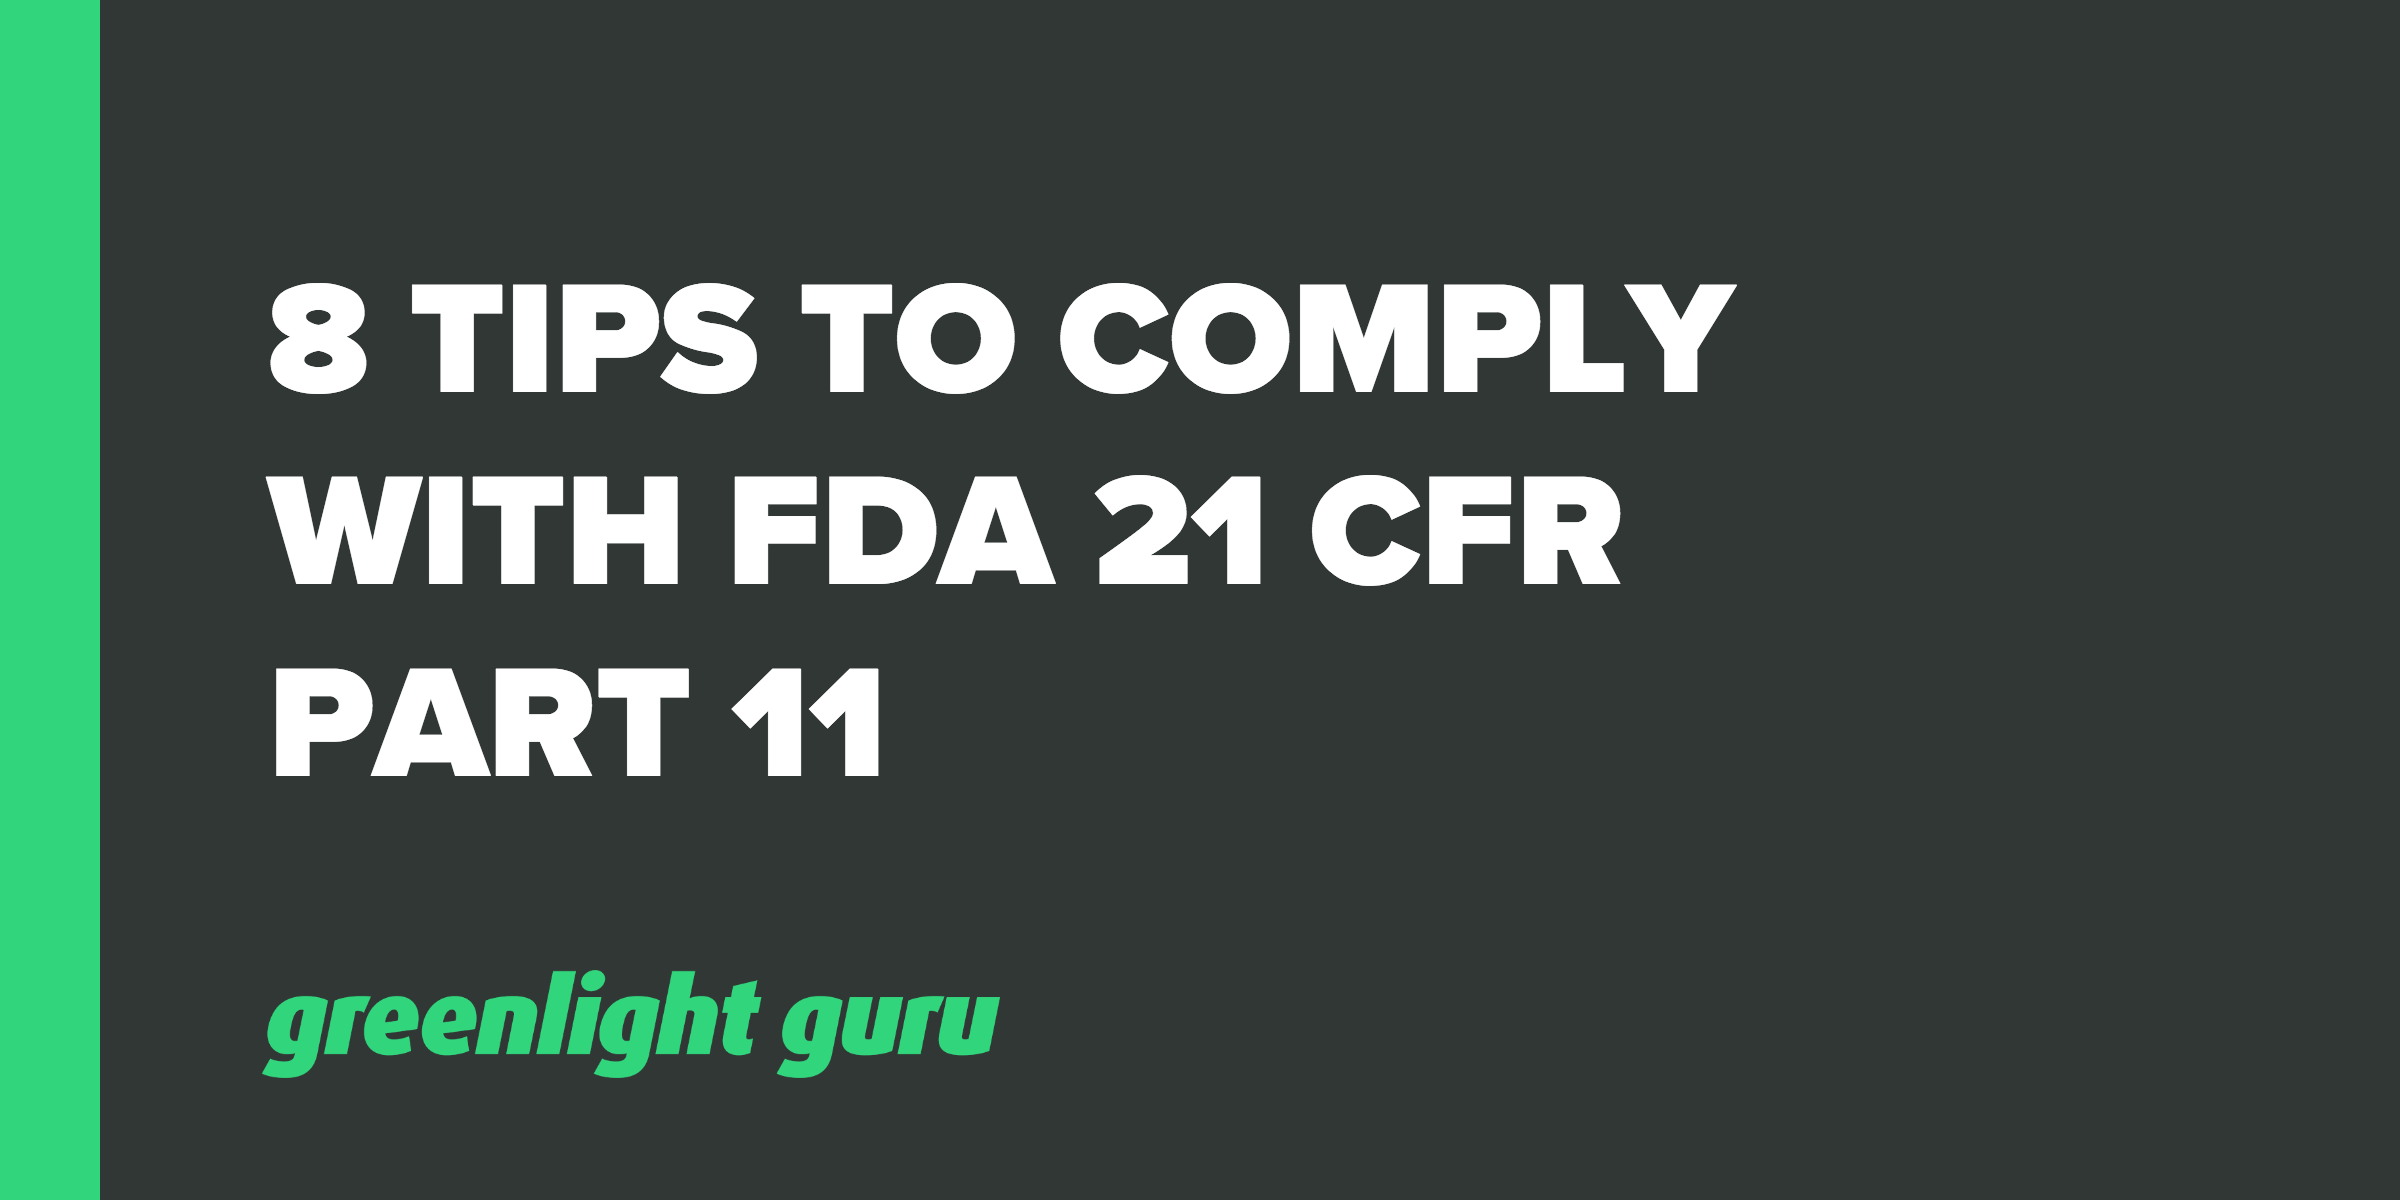 when it comes to compliance among medical device companies there is a lot of misleading information about fda 21 cfr part 11